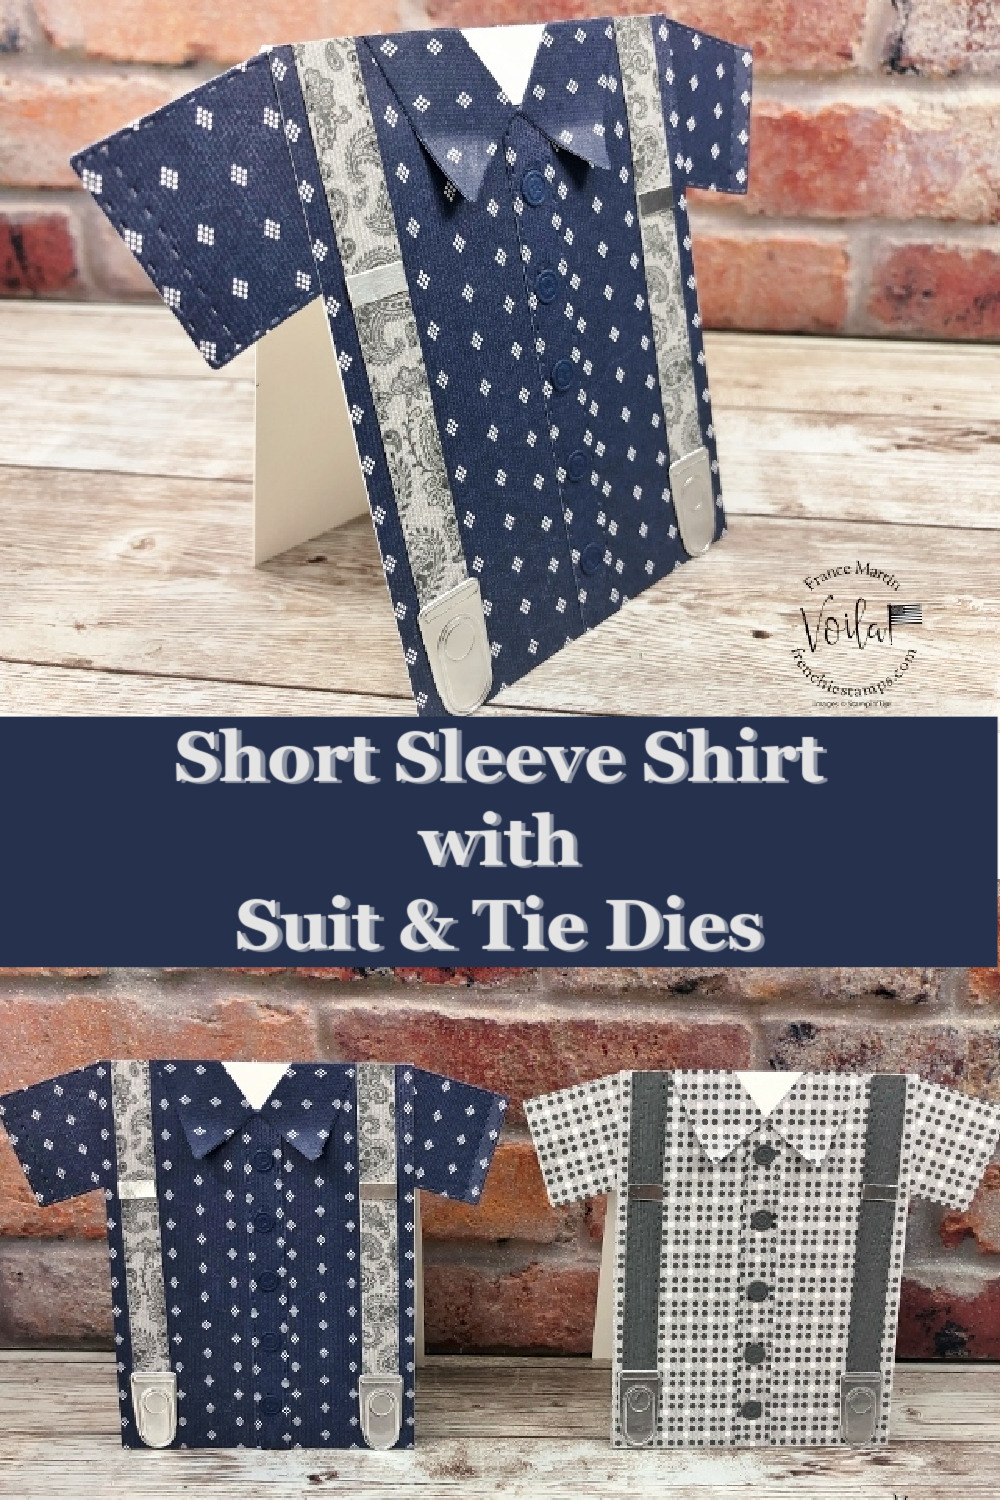 Shirt Card With Suit and Tie Dies